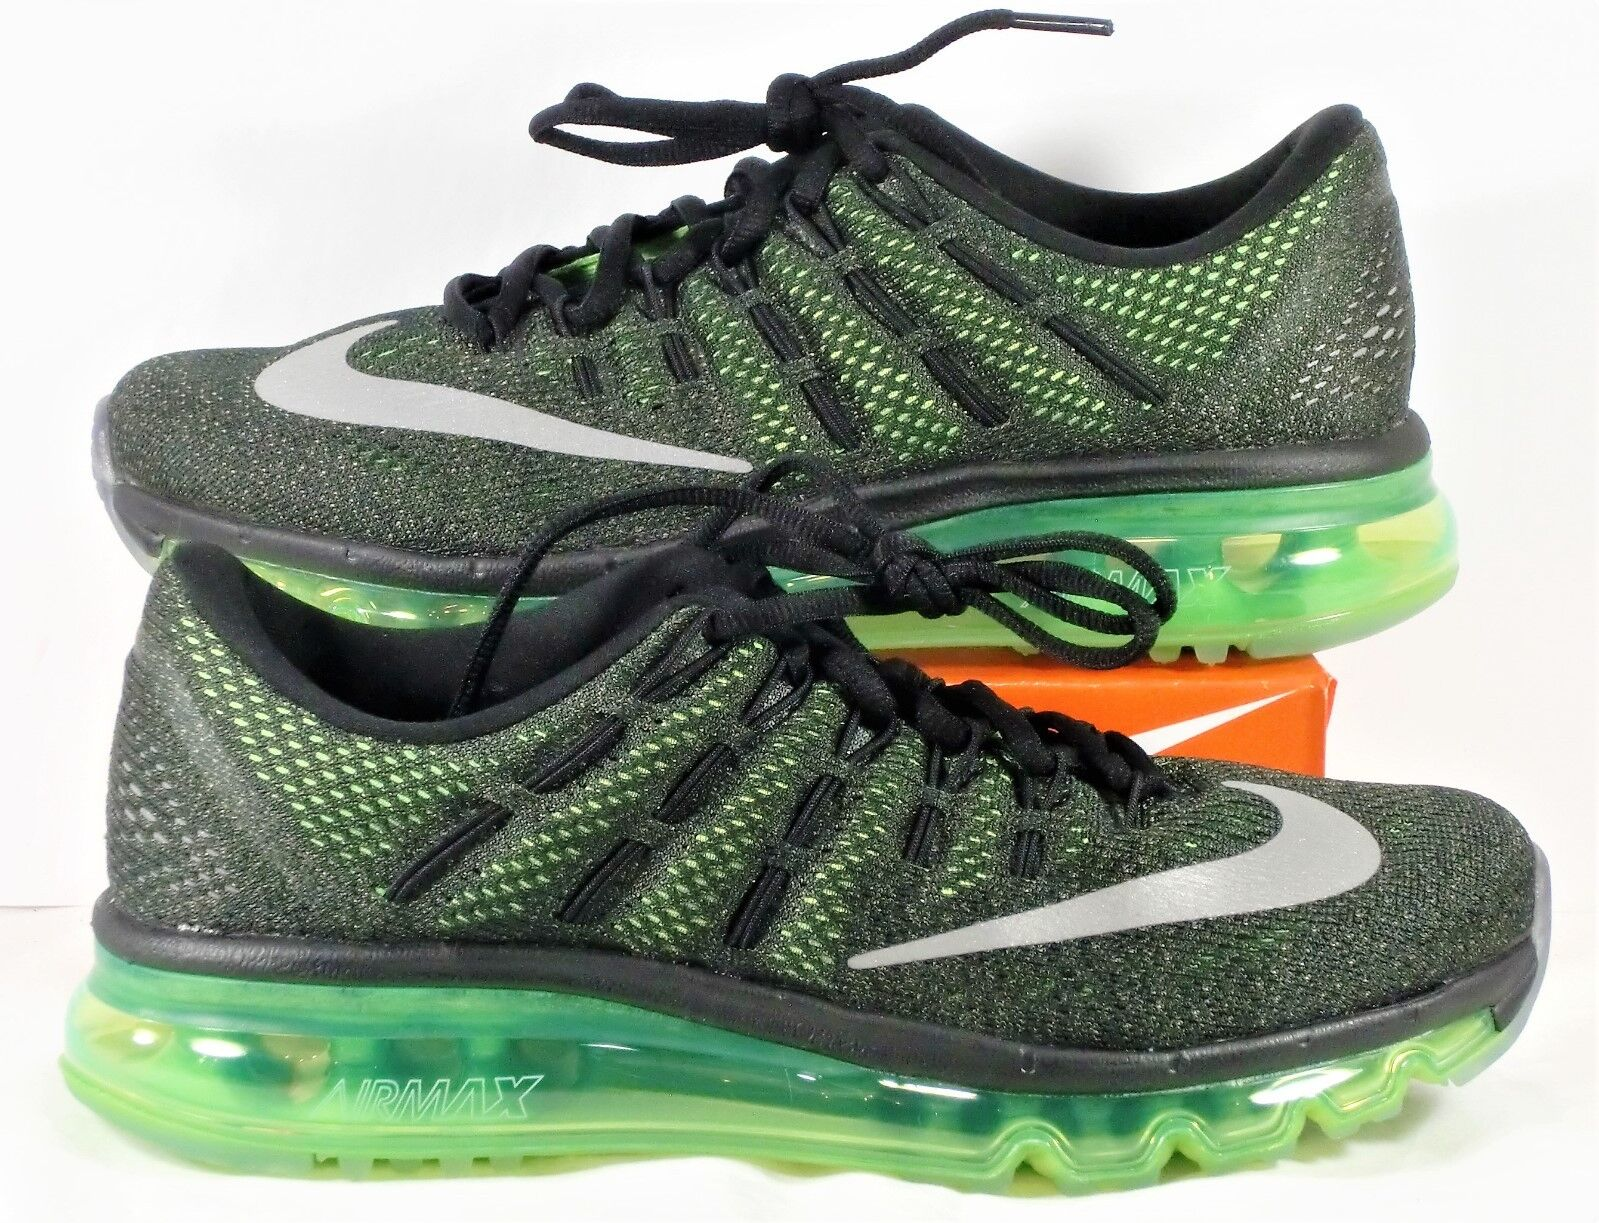 Nike Air Max 2018 Black & Volt Green & Silver Running Shoes Sz 6 NEW 806771 013 New shoes for men and women, limited time discount